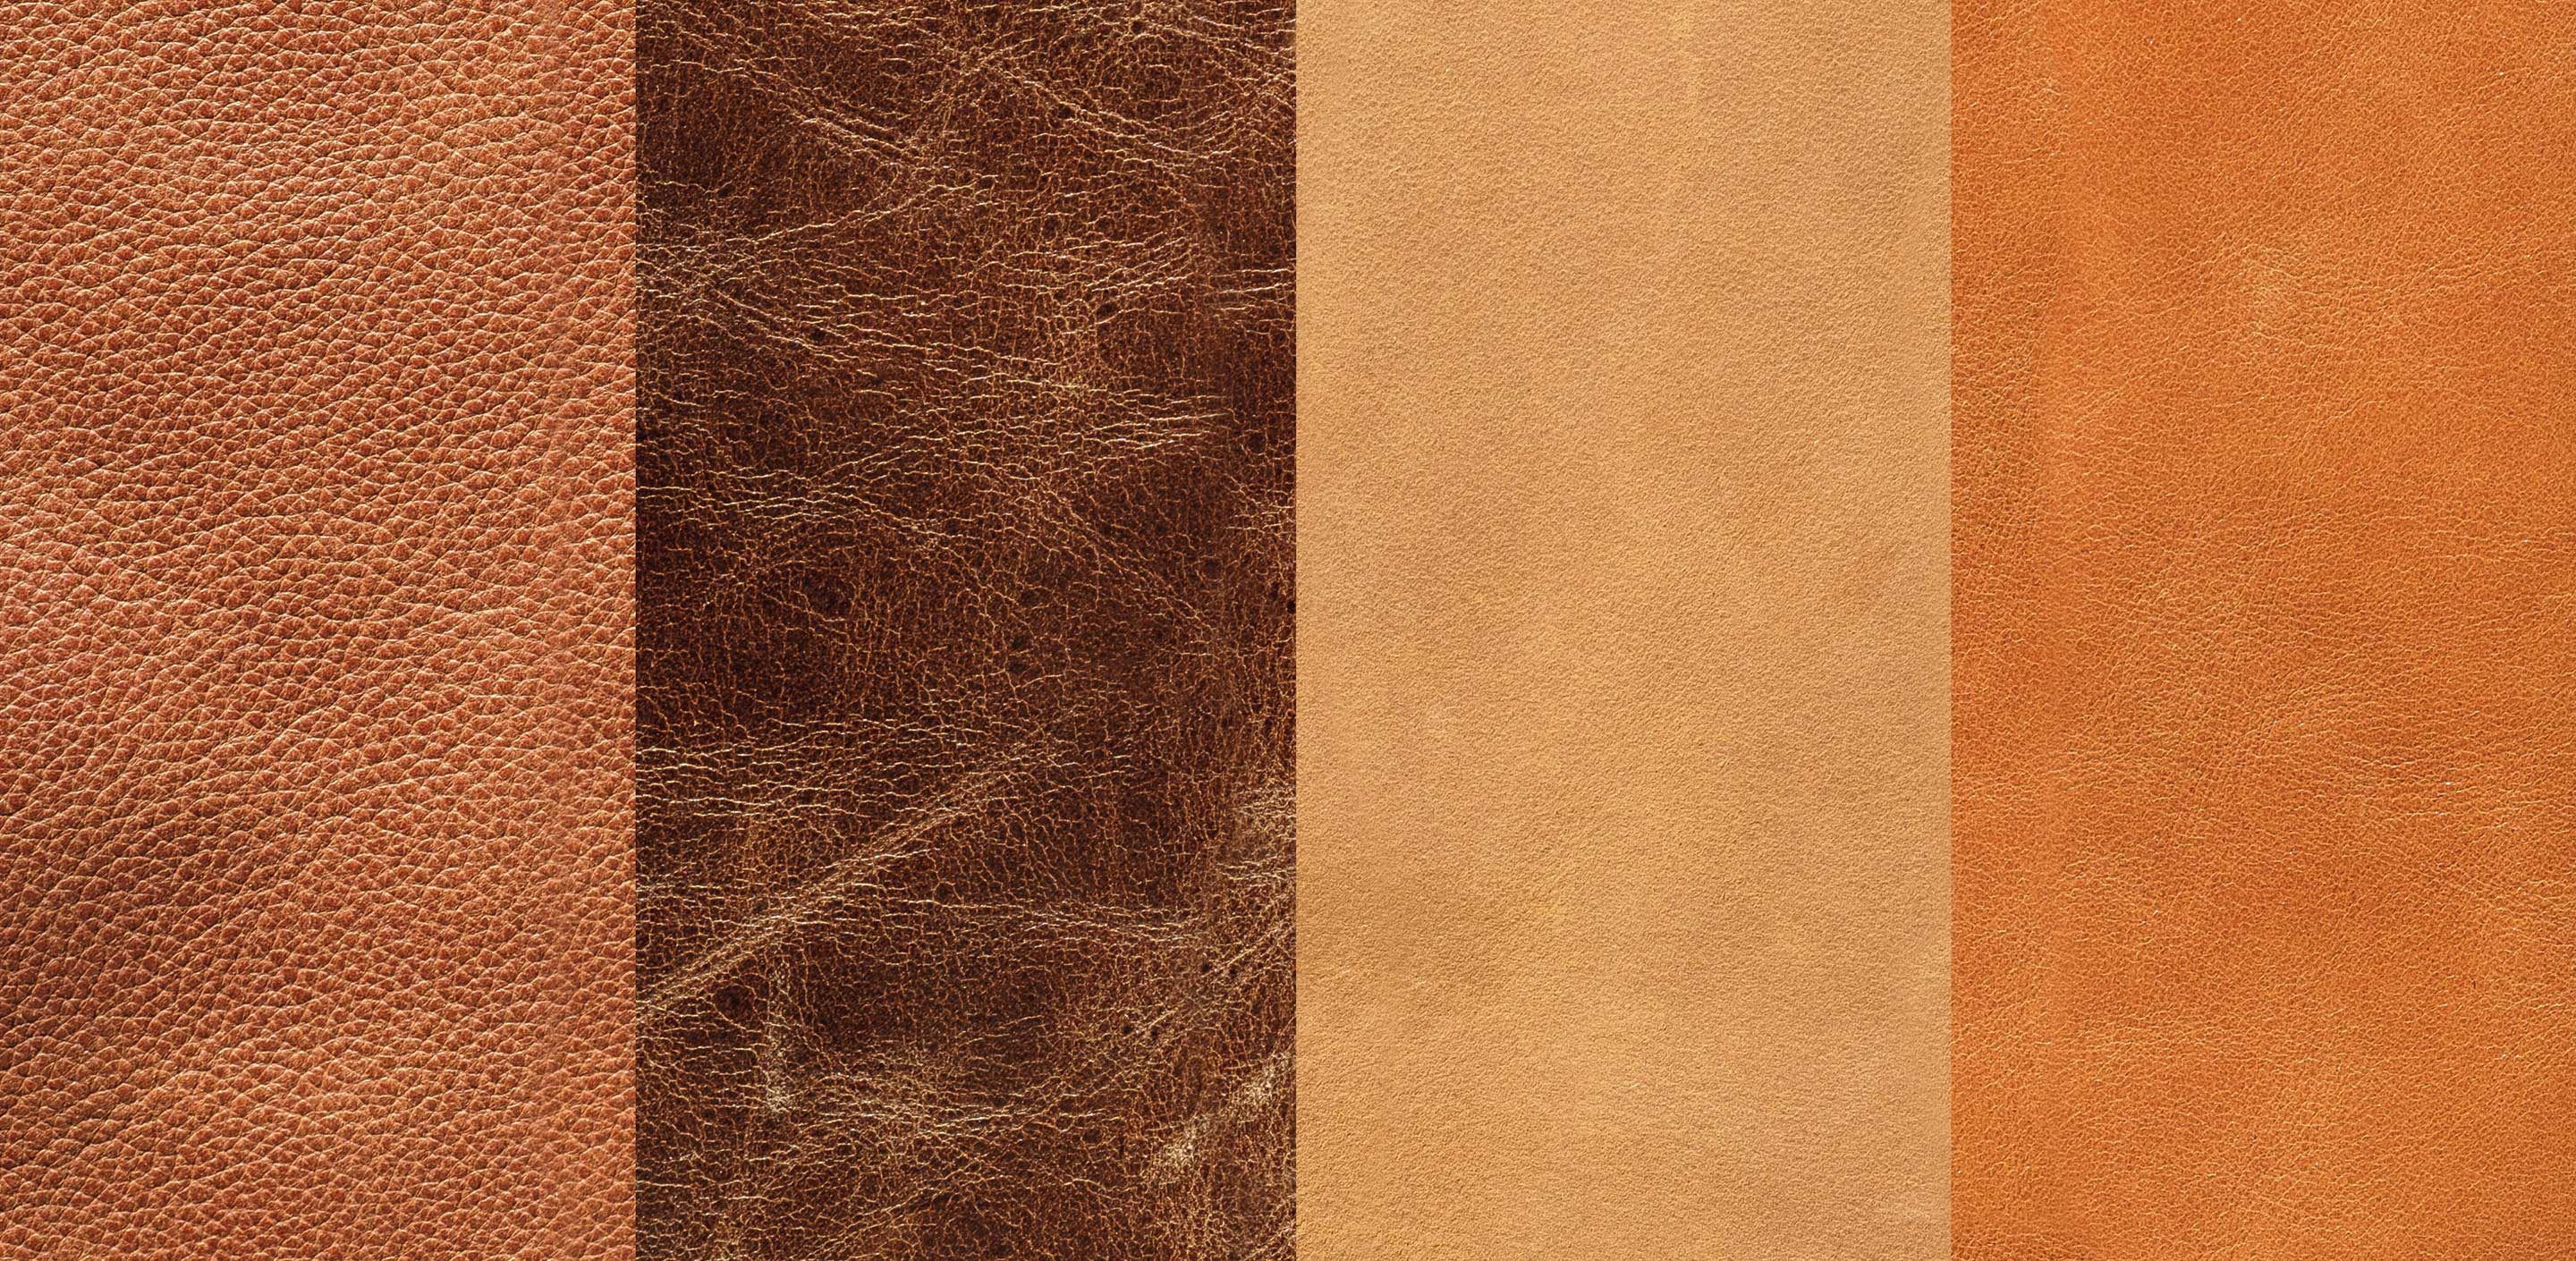 What Is The Most Durable Leather Finishing?